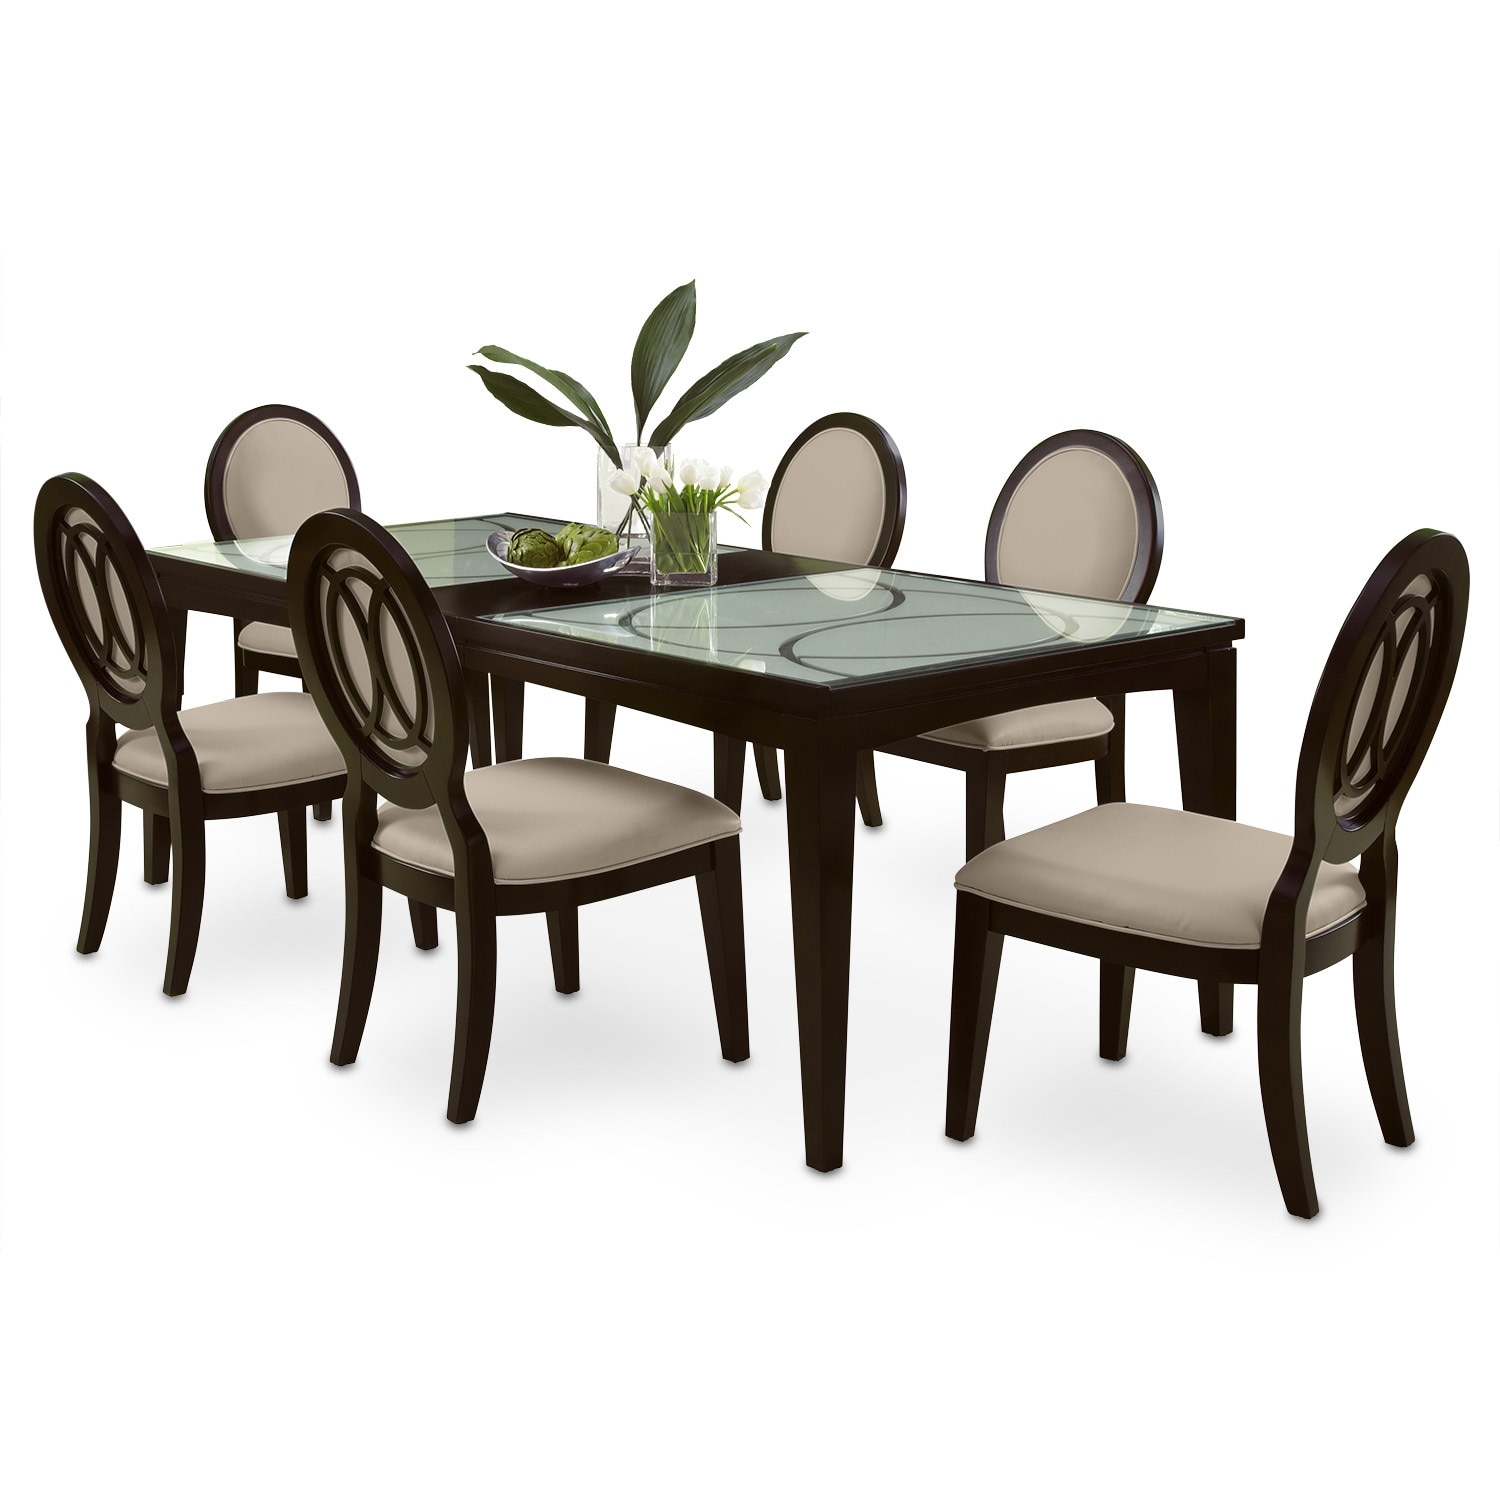 Value City Dining Room Tables Shop Dining Room Furniture Value City Furniture Value City